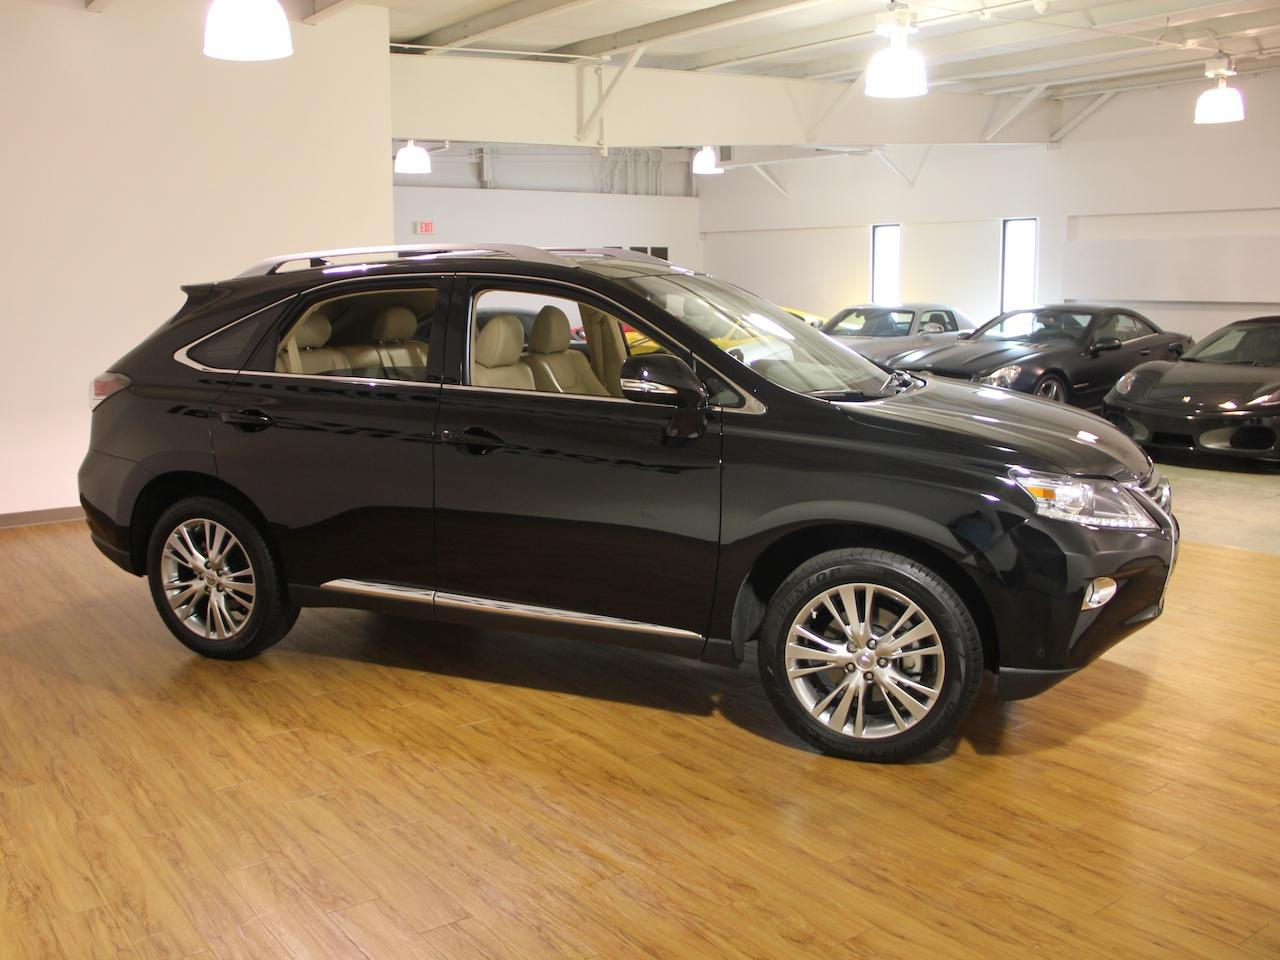 2014 lexus rx 350. Black Bedroom Furniture Sets. Home Design Ideas